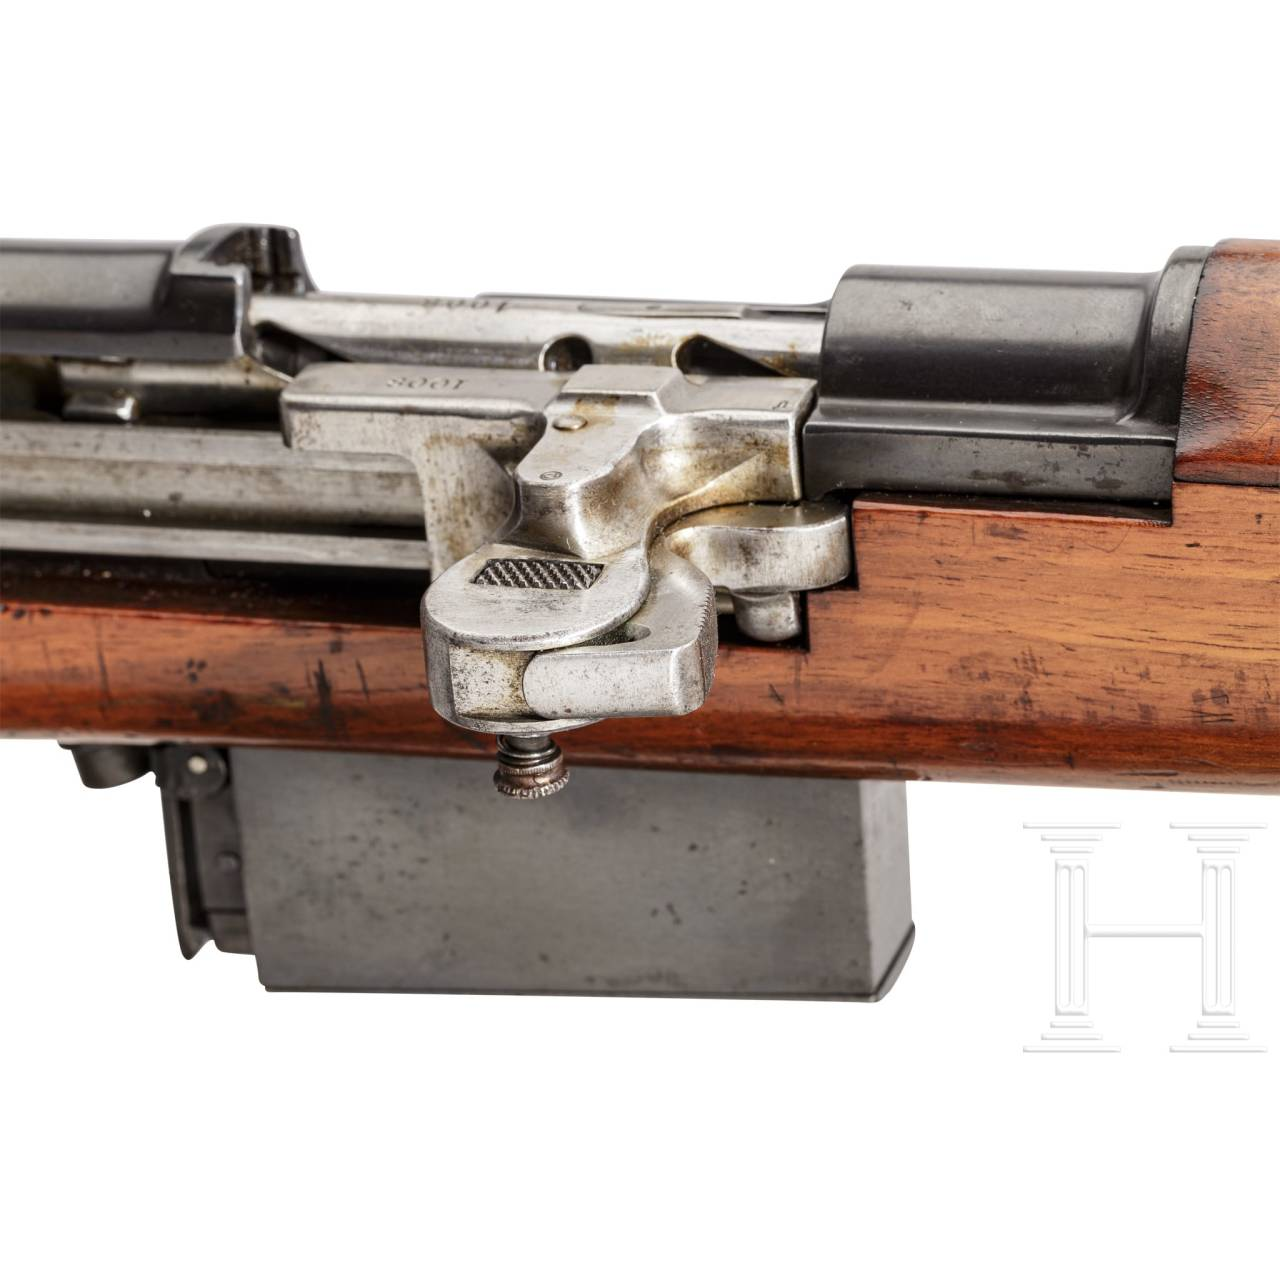 An Aviator's Self-Loading Carbine 15 (Mondragon)